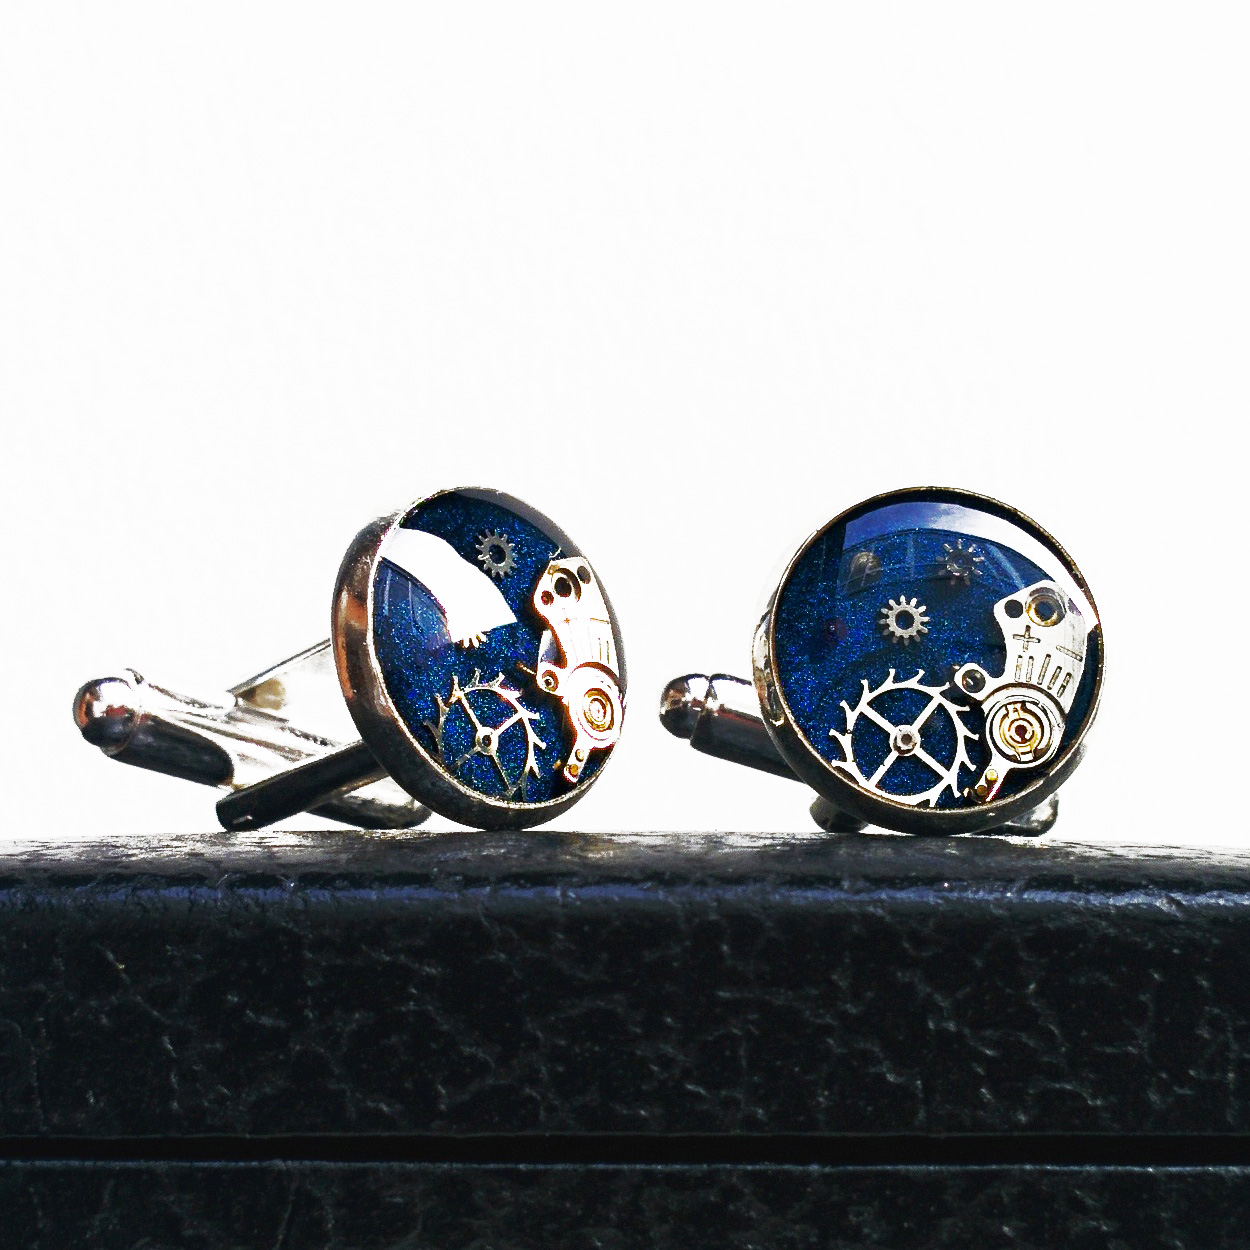 Plenty of new watch part cufflinks will be available